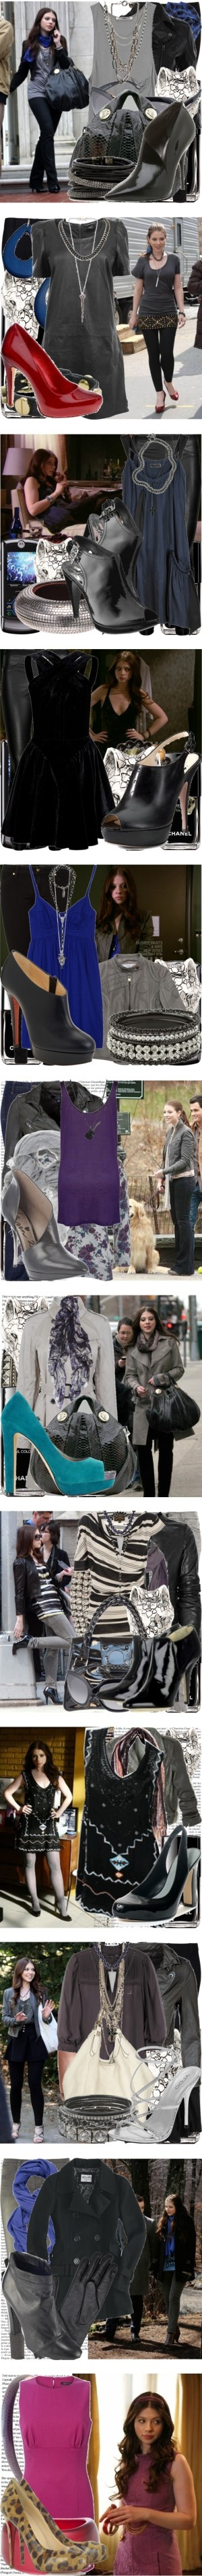 """georgina sparks."" by valerieking ❤ liked on Polyvore"